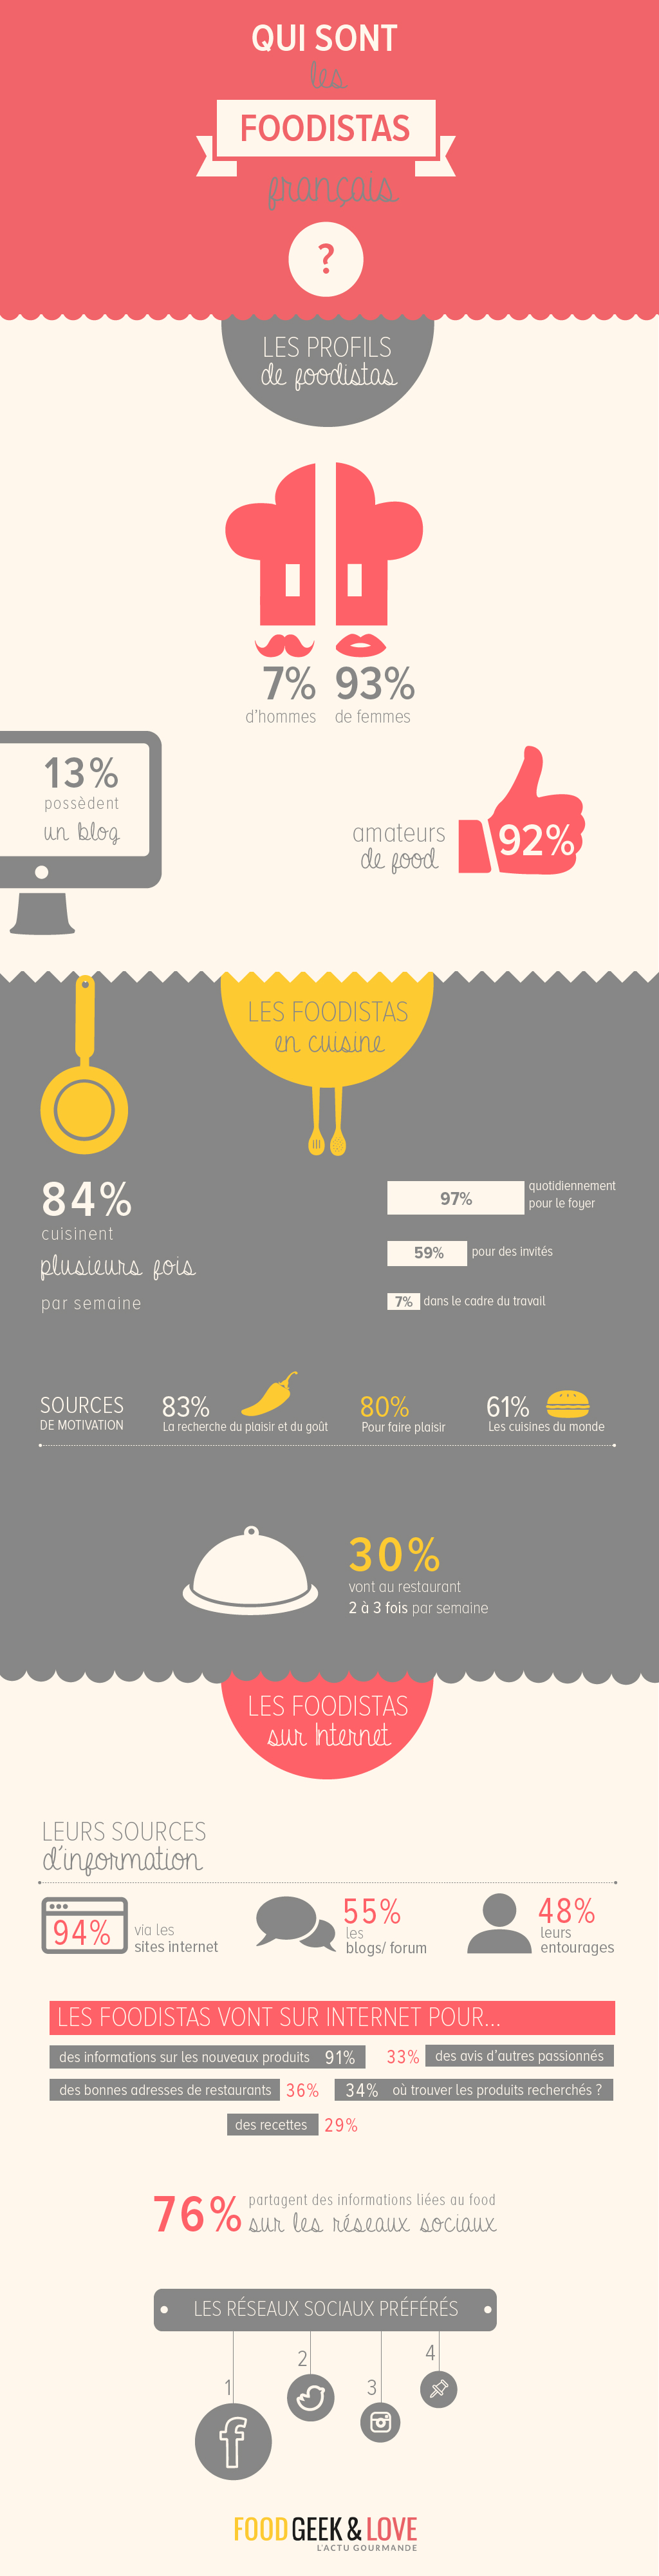 Infographie-foodista